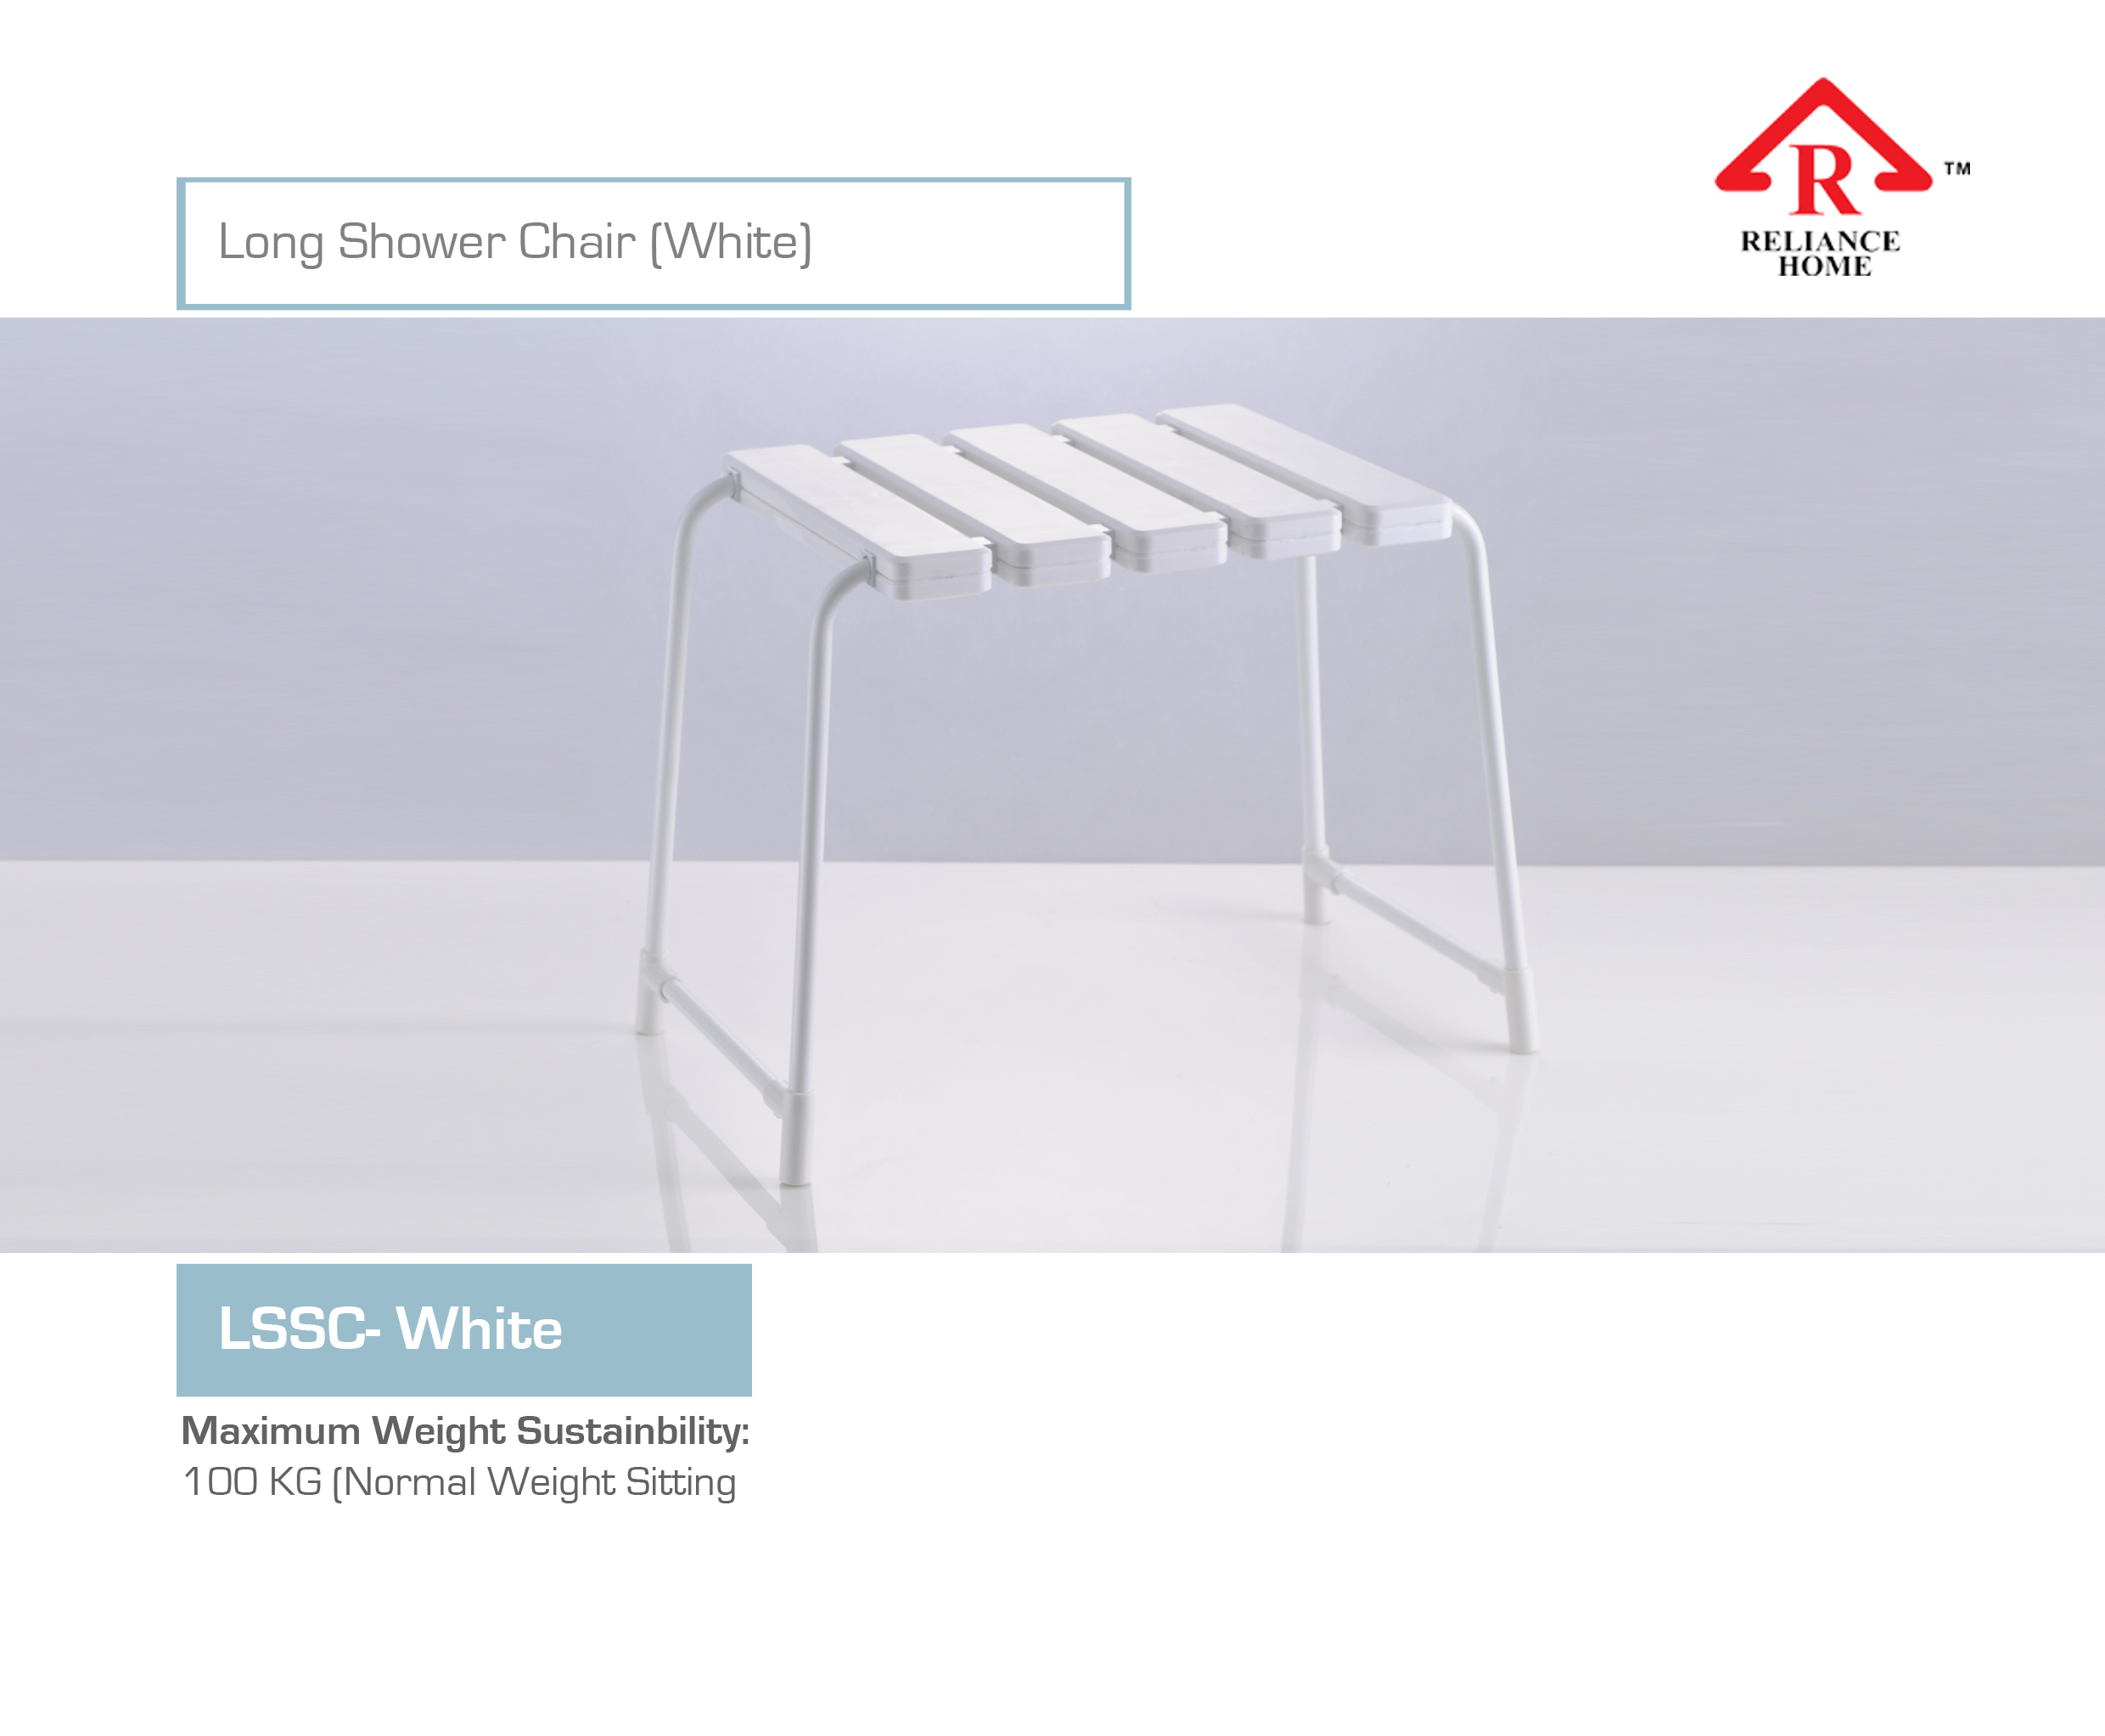 LSSCwhite